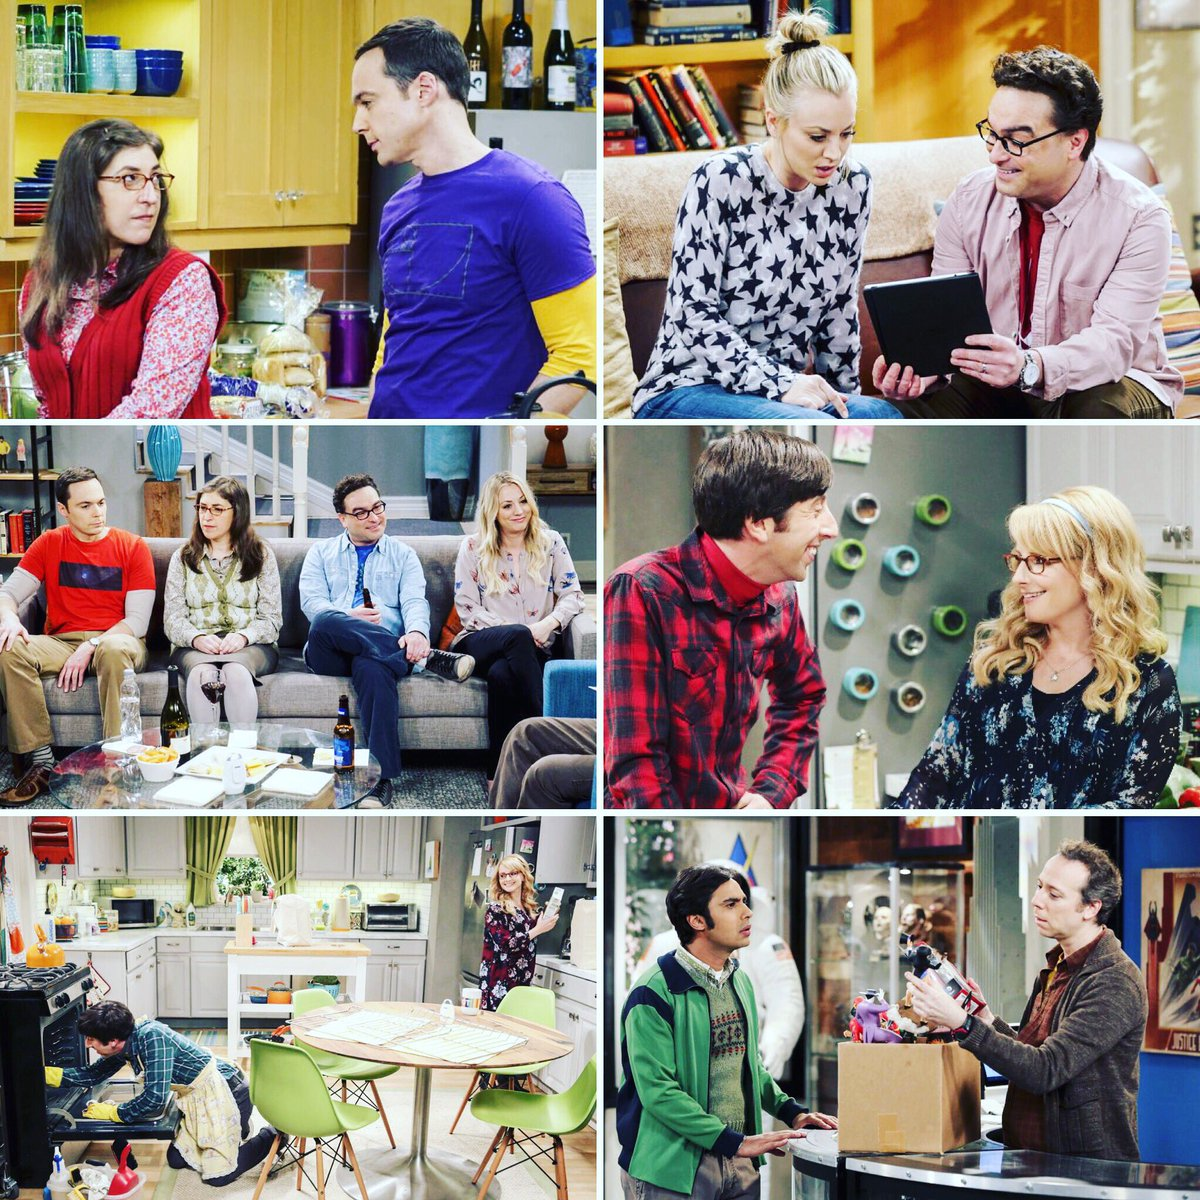 There's a kickass new @bigbangtheory tonight!!! https://t.co/kS6B2Ib6sZ